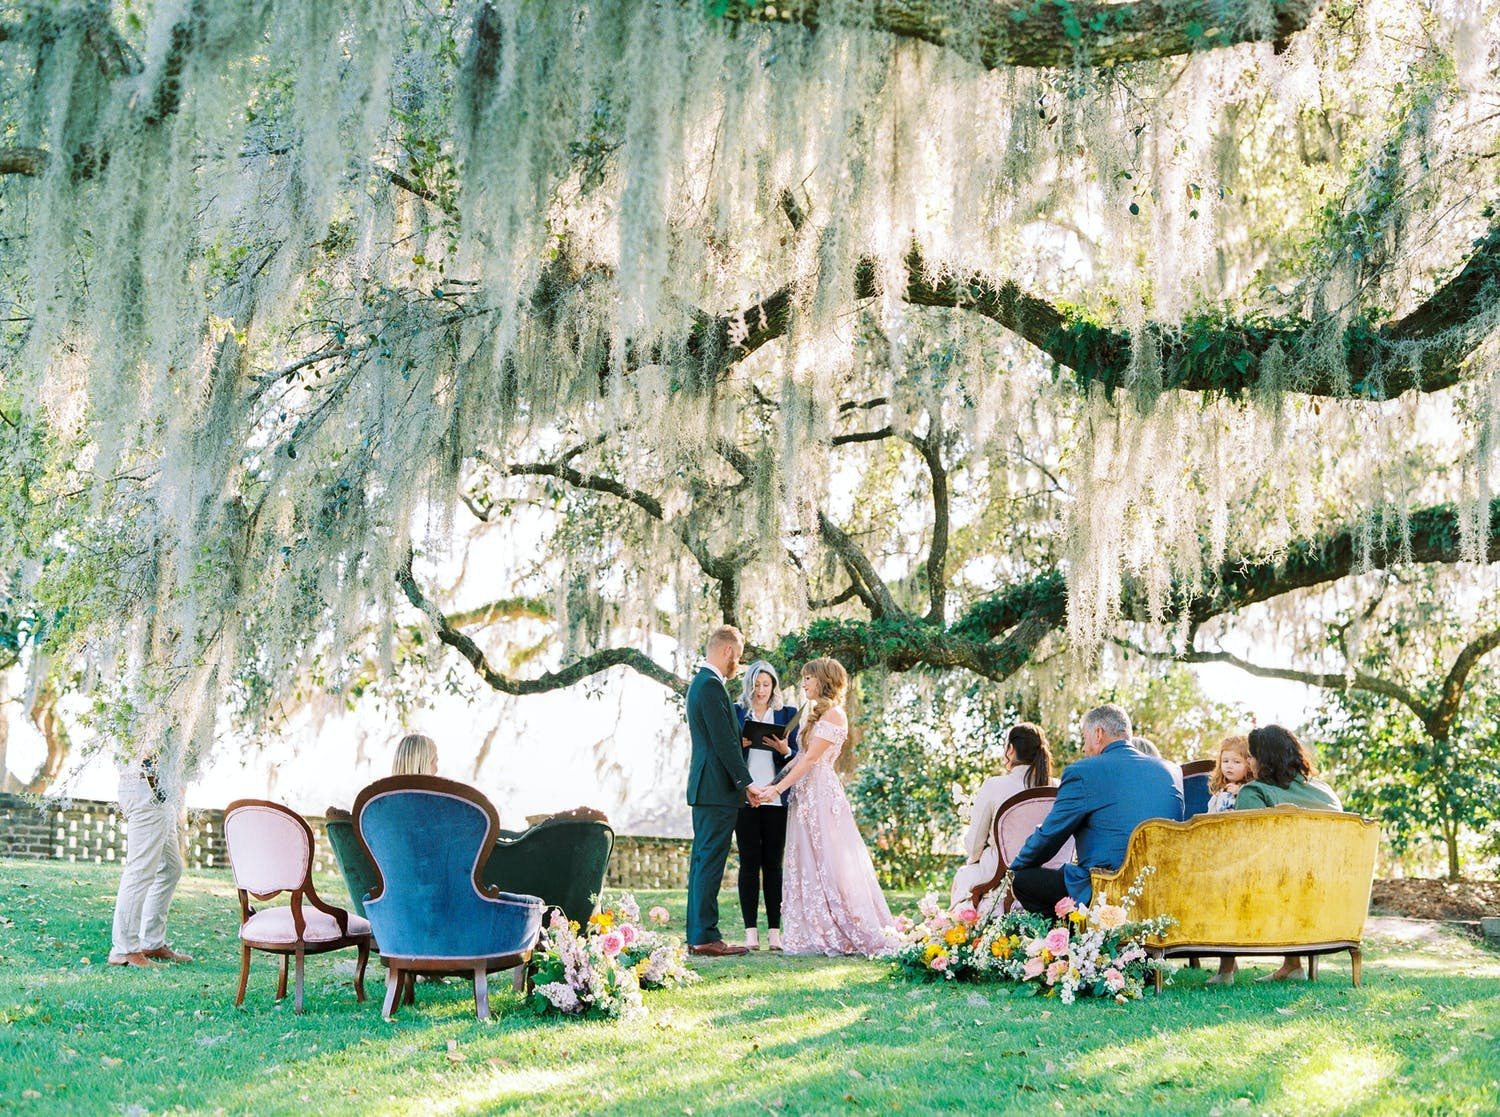 Elopement wedding ceremony in front of willow tree with colorful and eclectic vintage seating   PartySlate